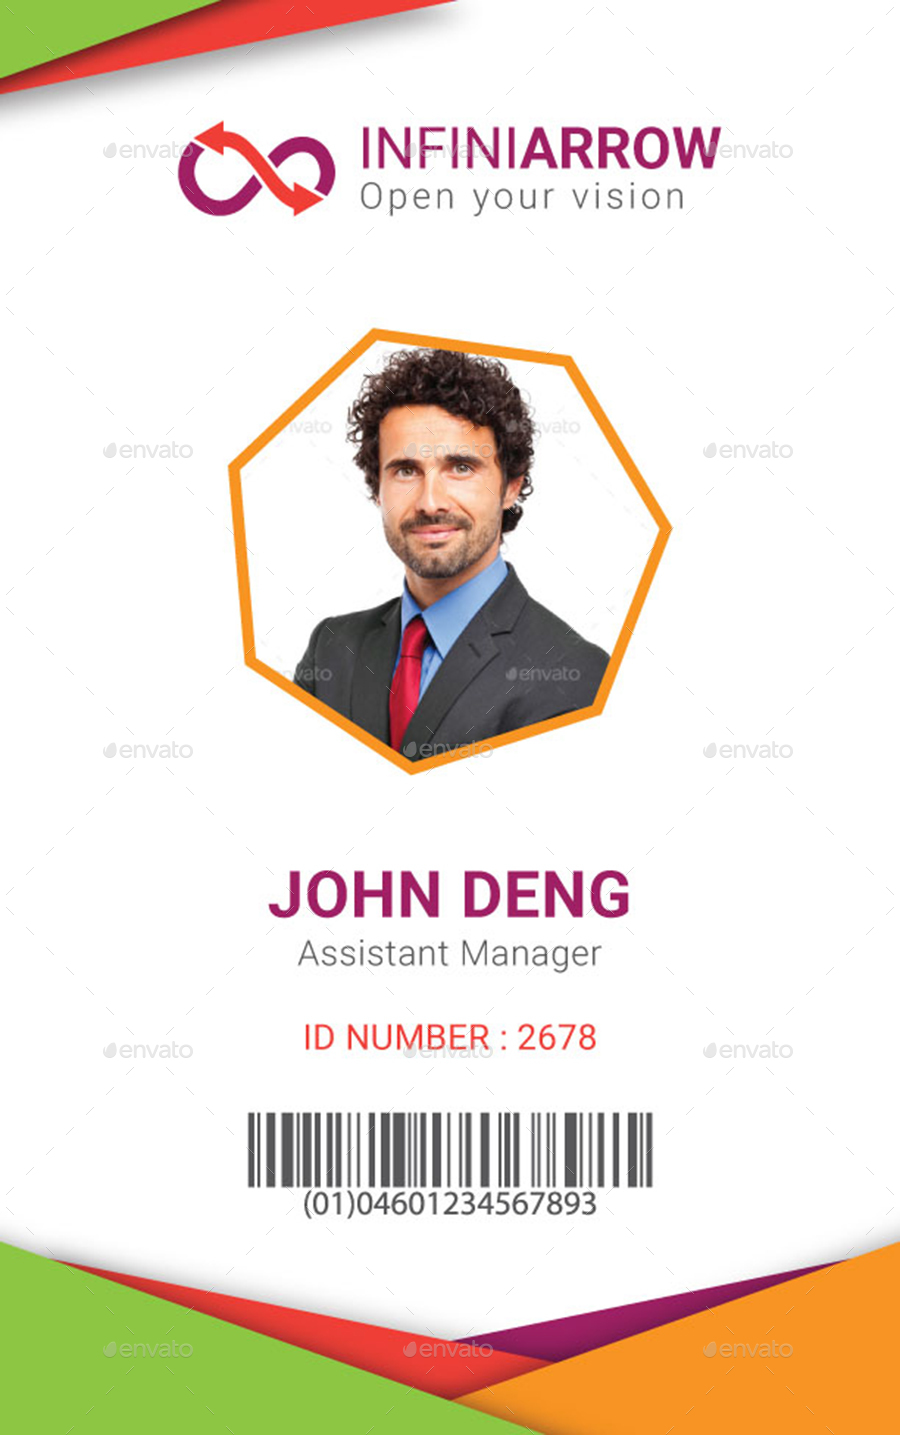 Multipurpose Business ID Card Template by dotnpix